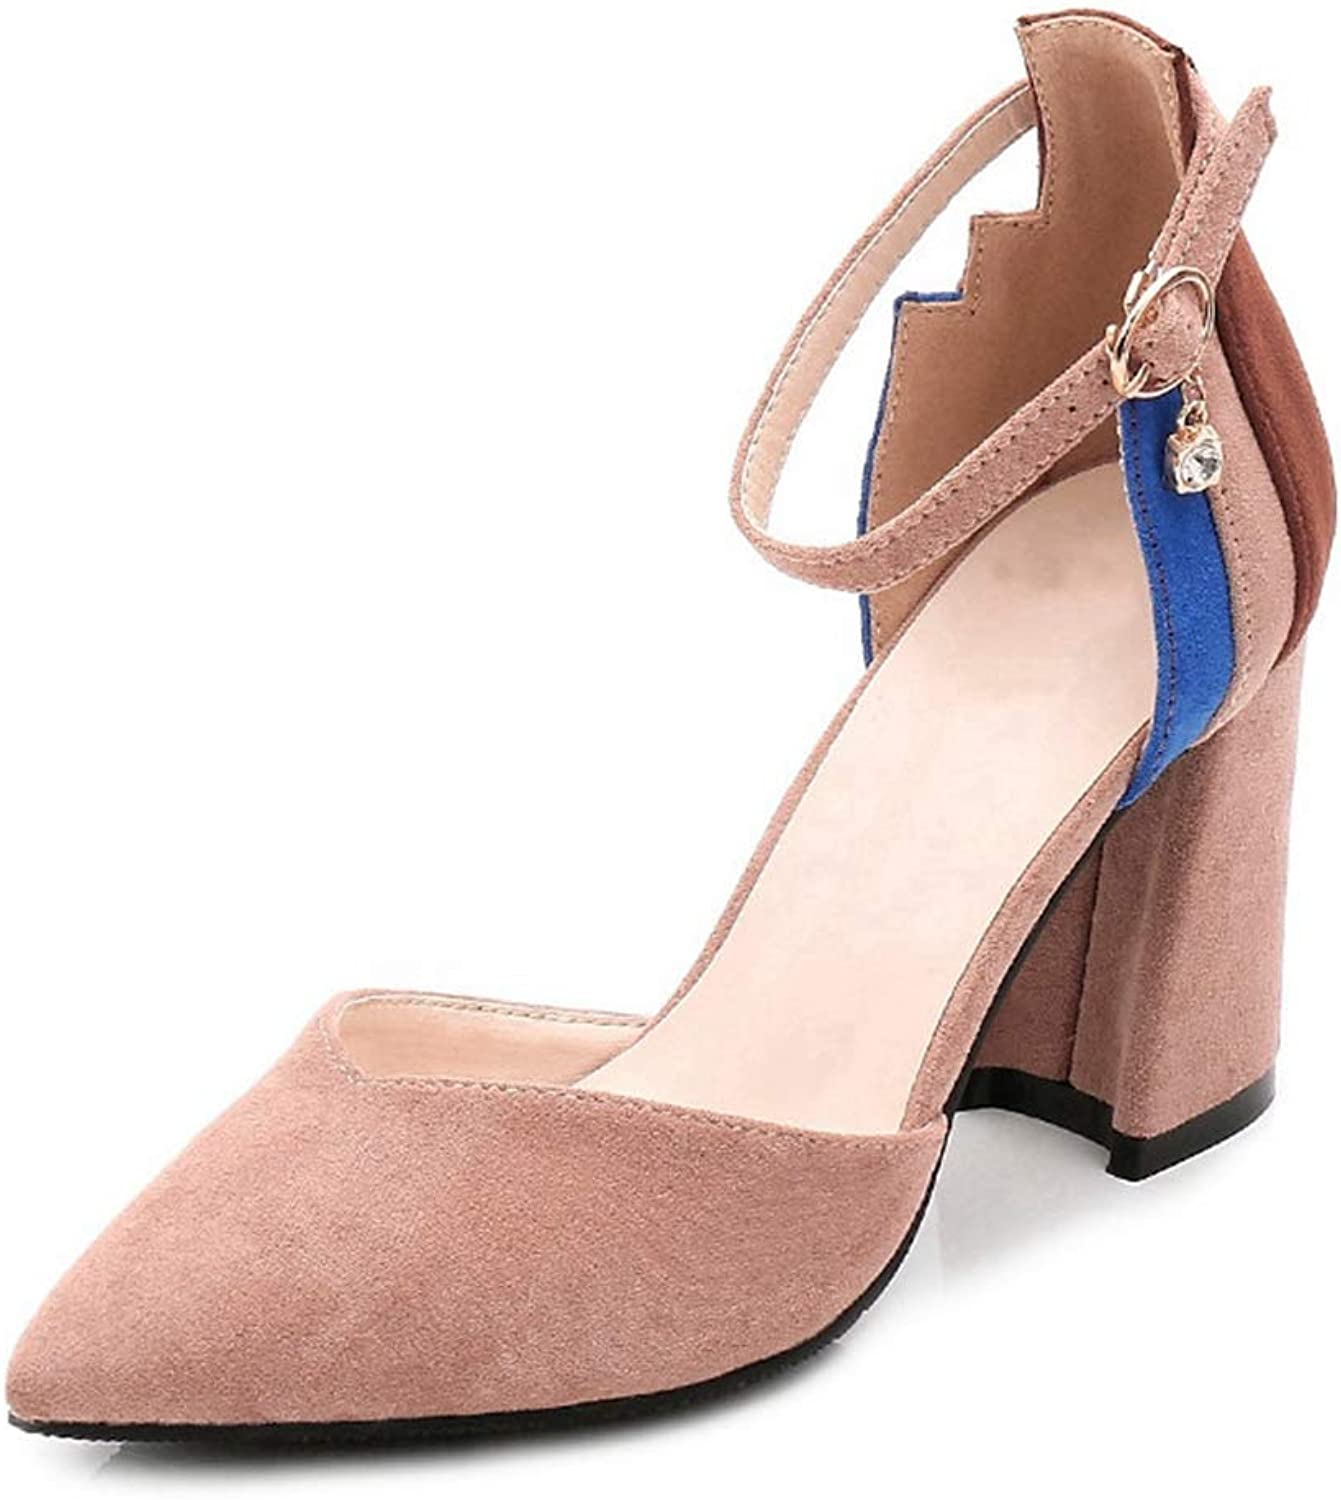 CYBLING Womens Pointy Toe Chunky Mid Heel Pumps Elegant Contrast color Ankle Strap Suede Dress shoes